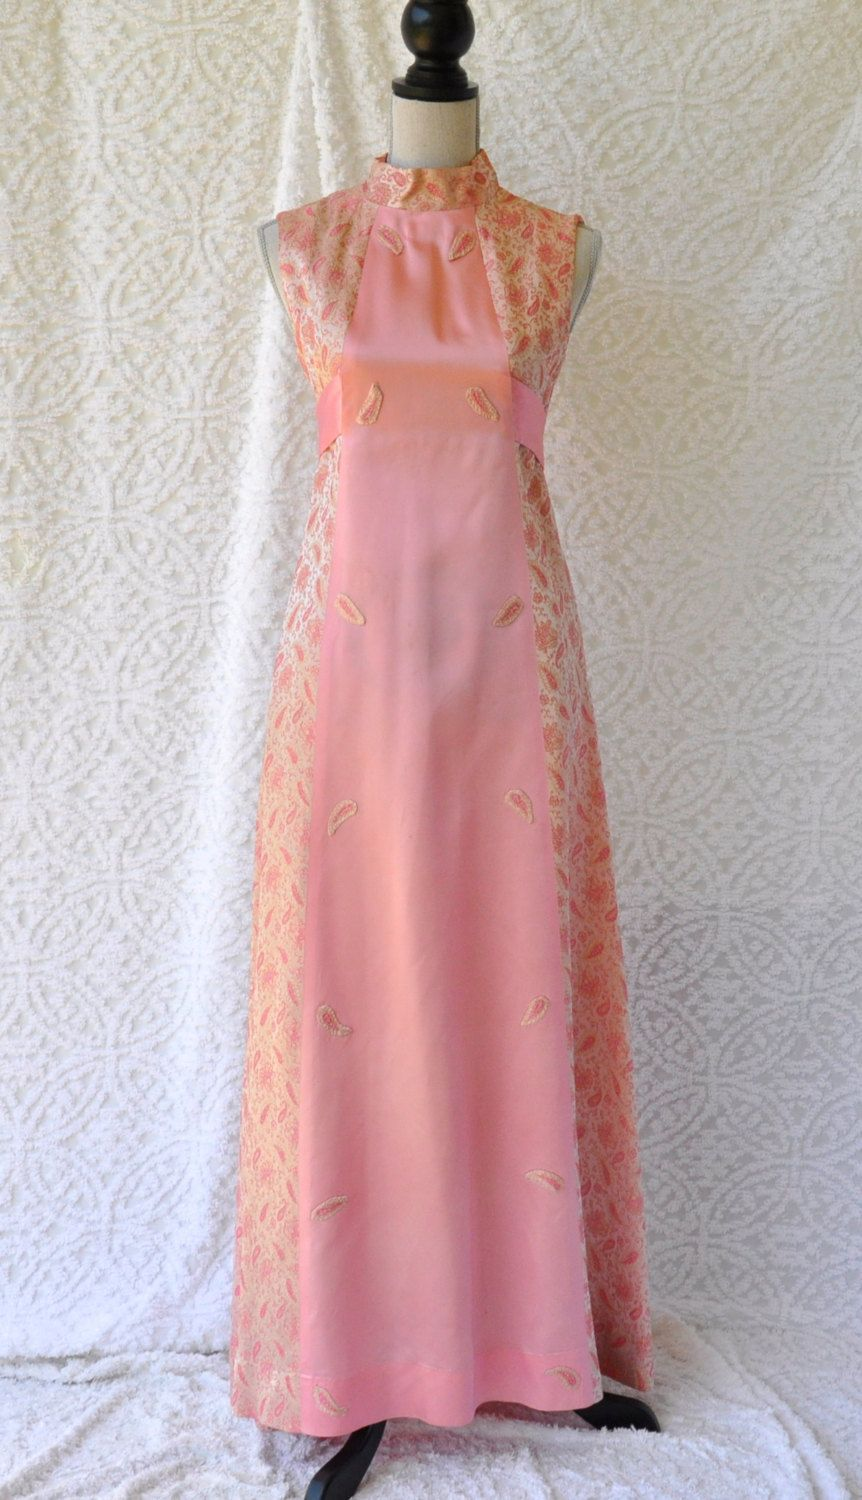 Handmade formal gown w cape jacket asian style s prom dress